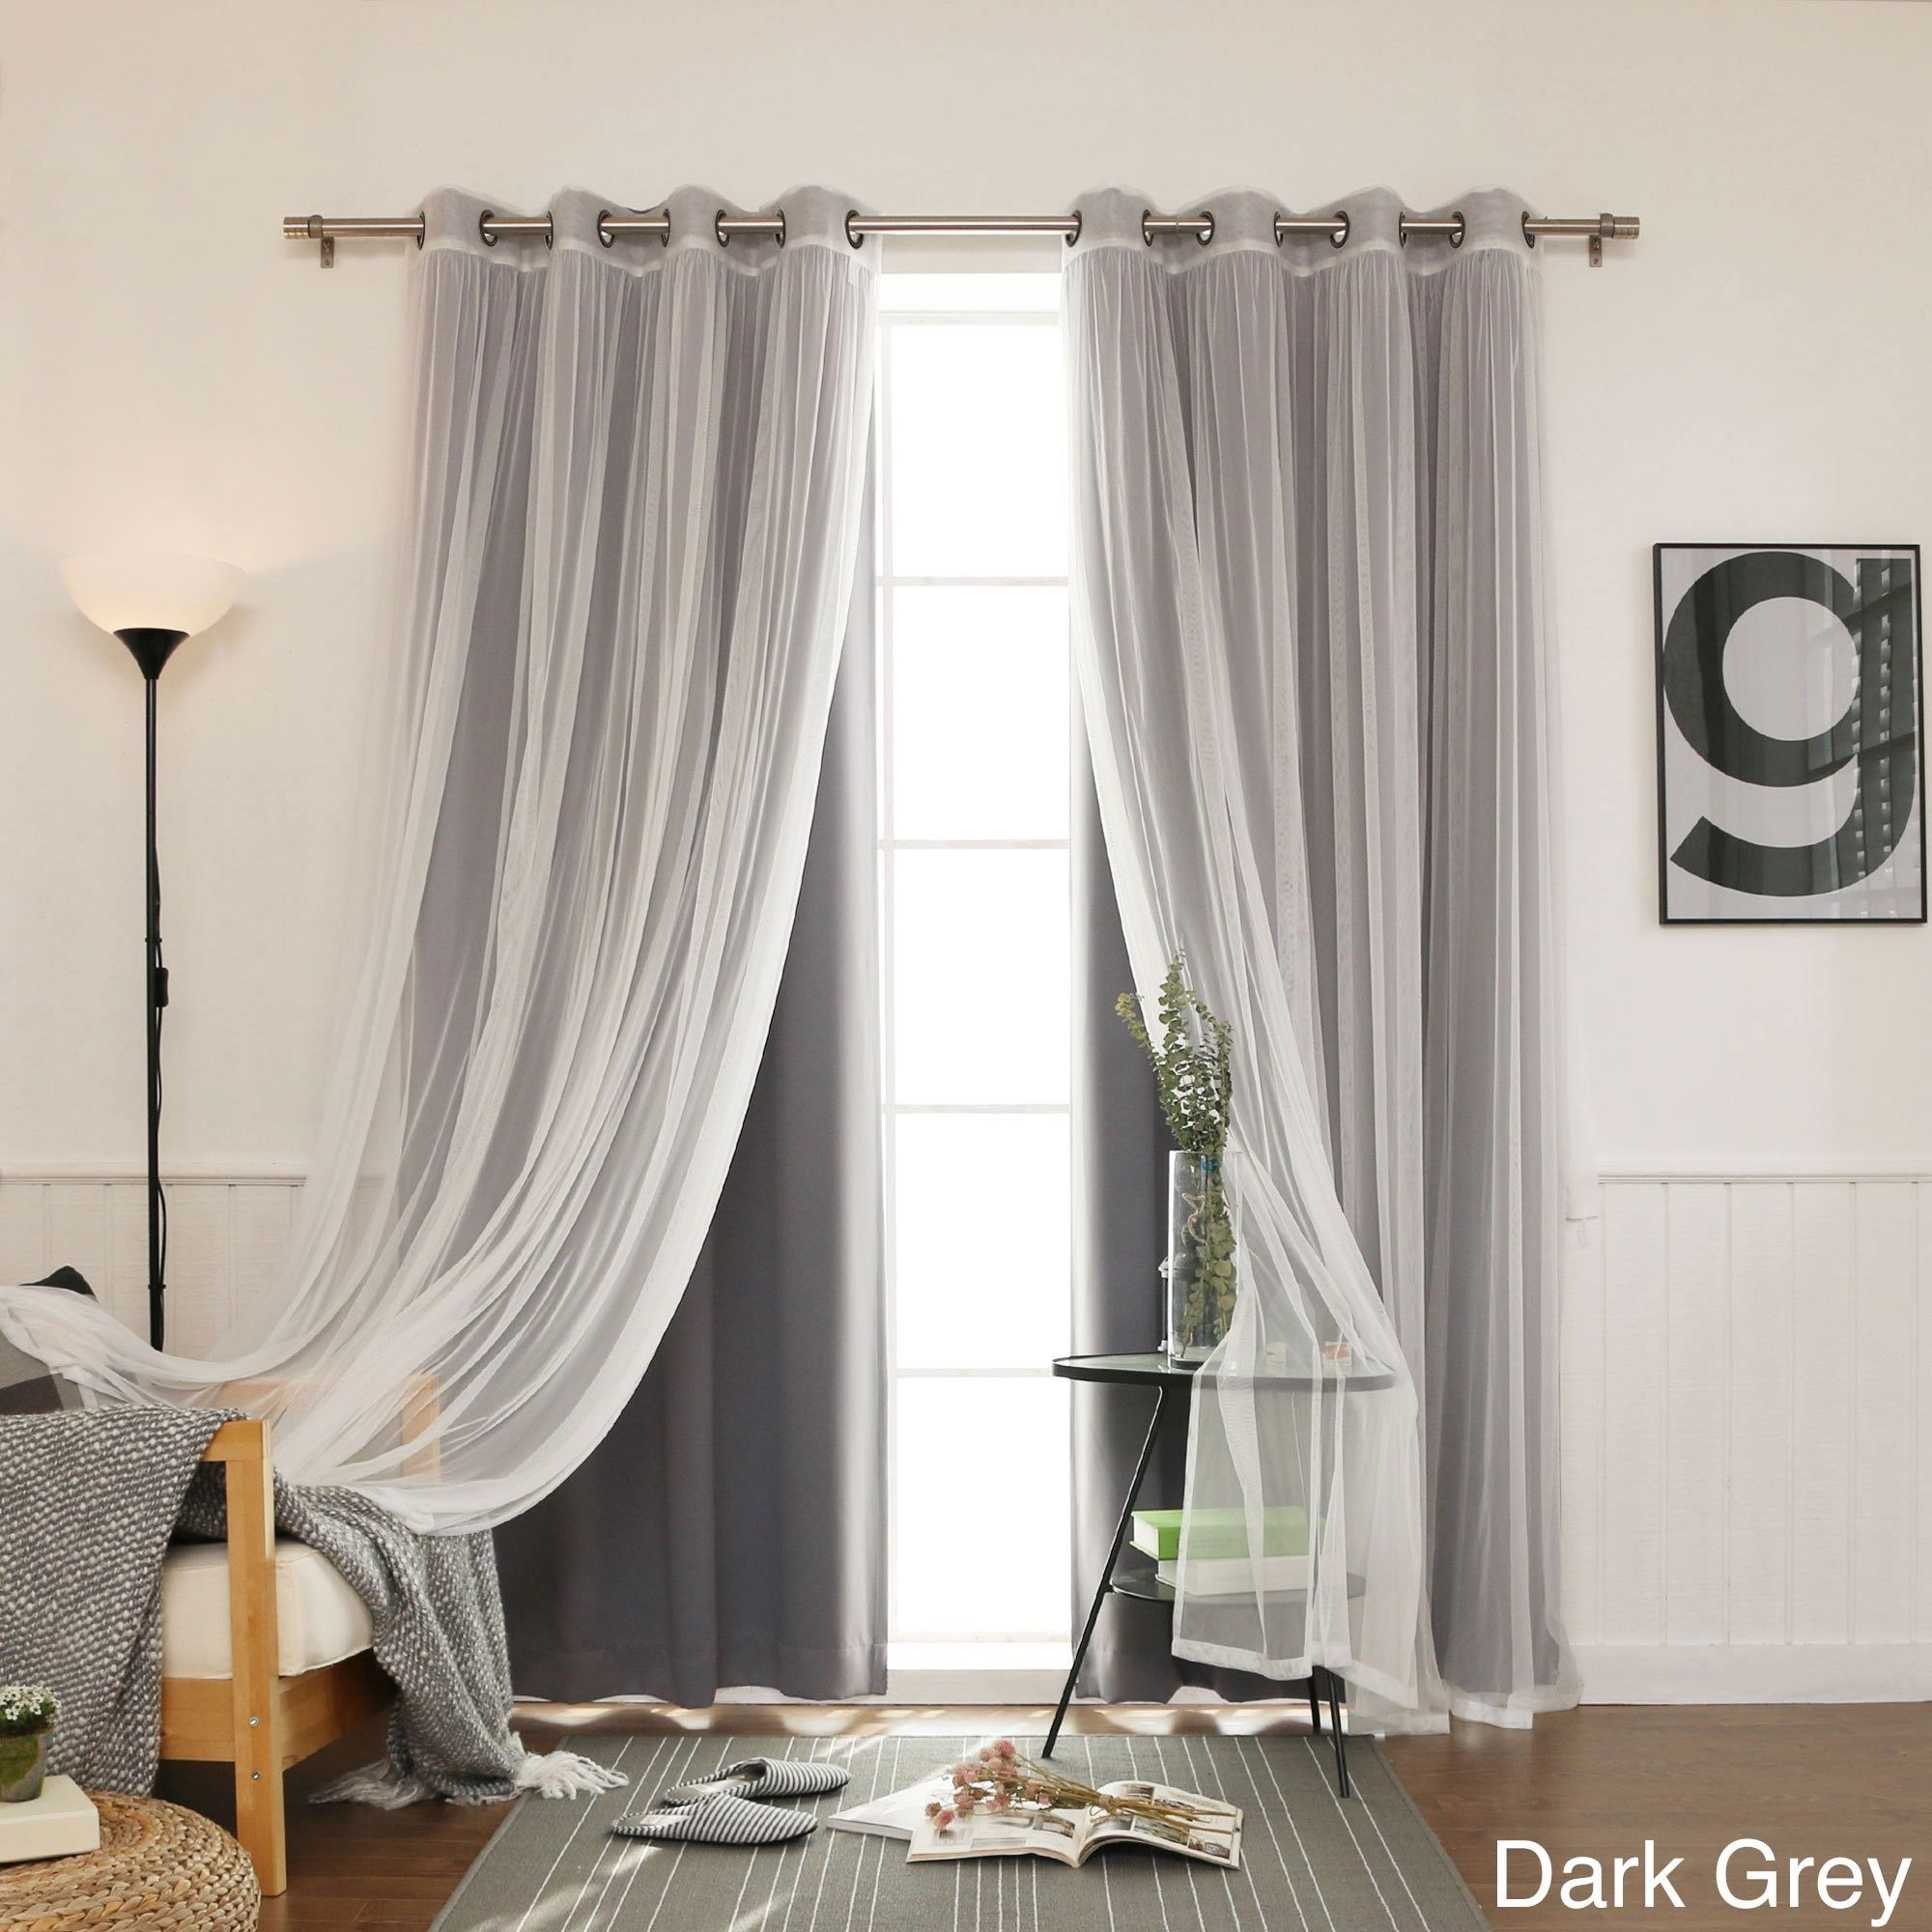 these our curtains a pin tiles blackout reverse printed the moroccan white color and decorative black pop have backdrop on stylish feature with of